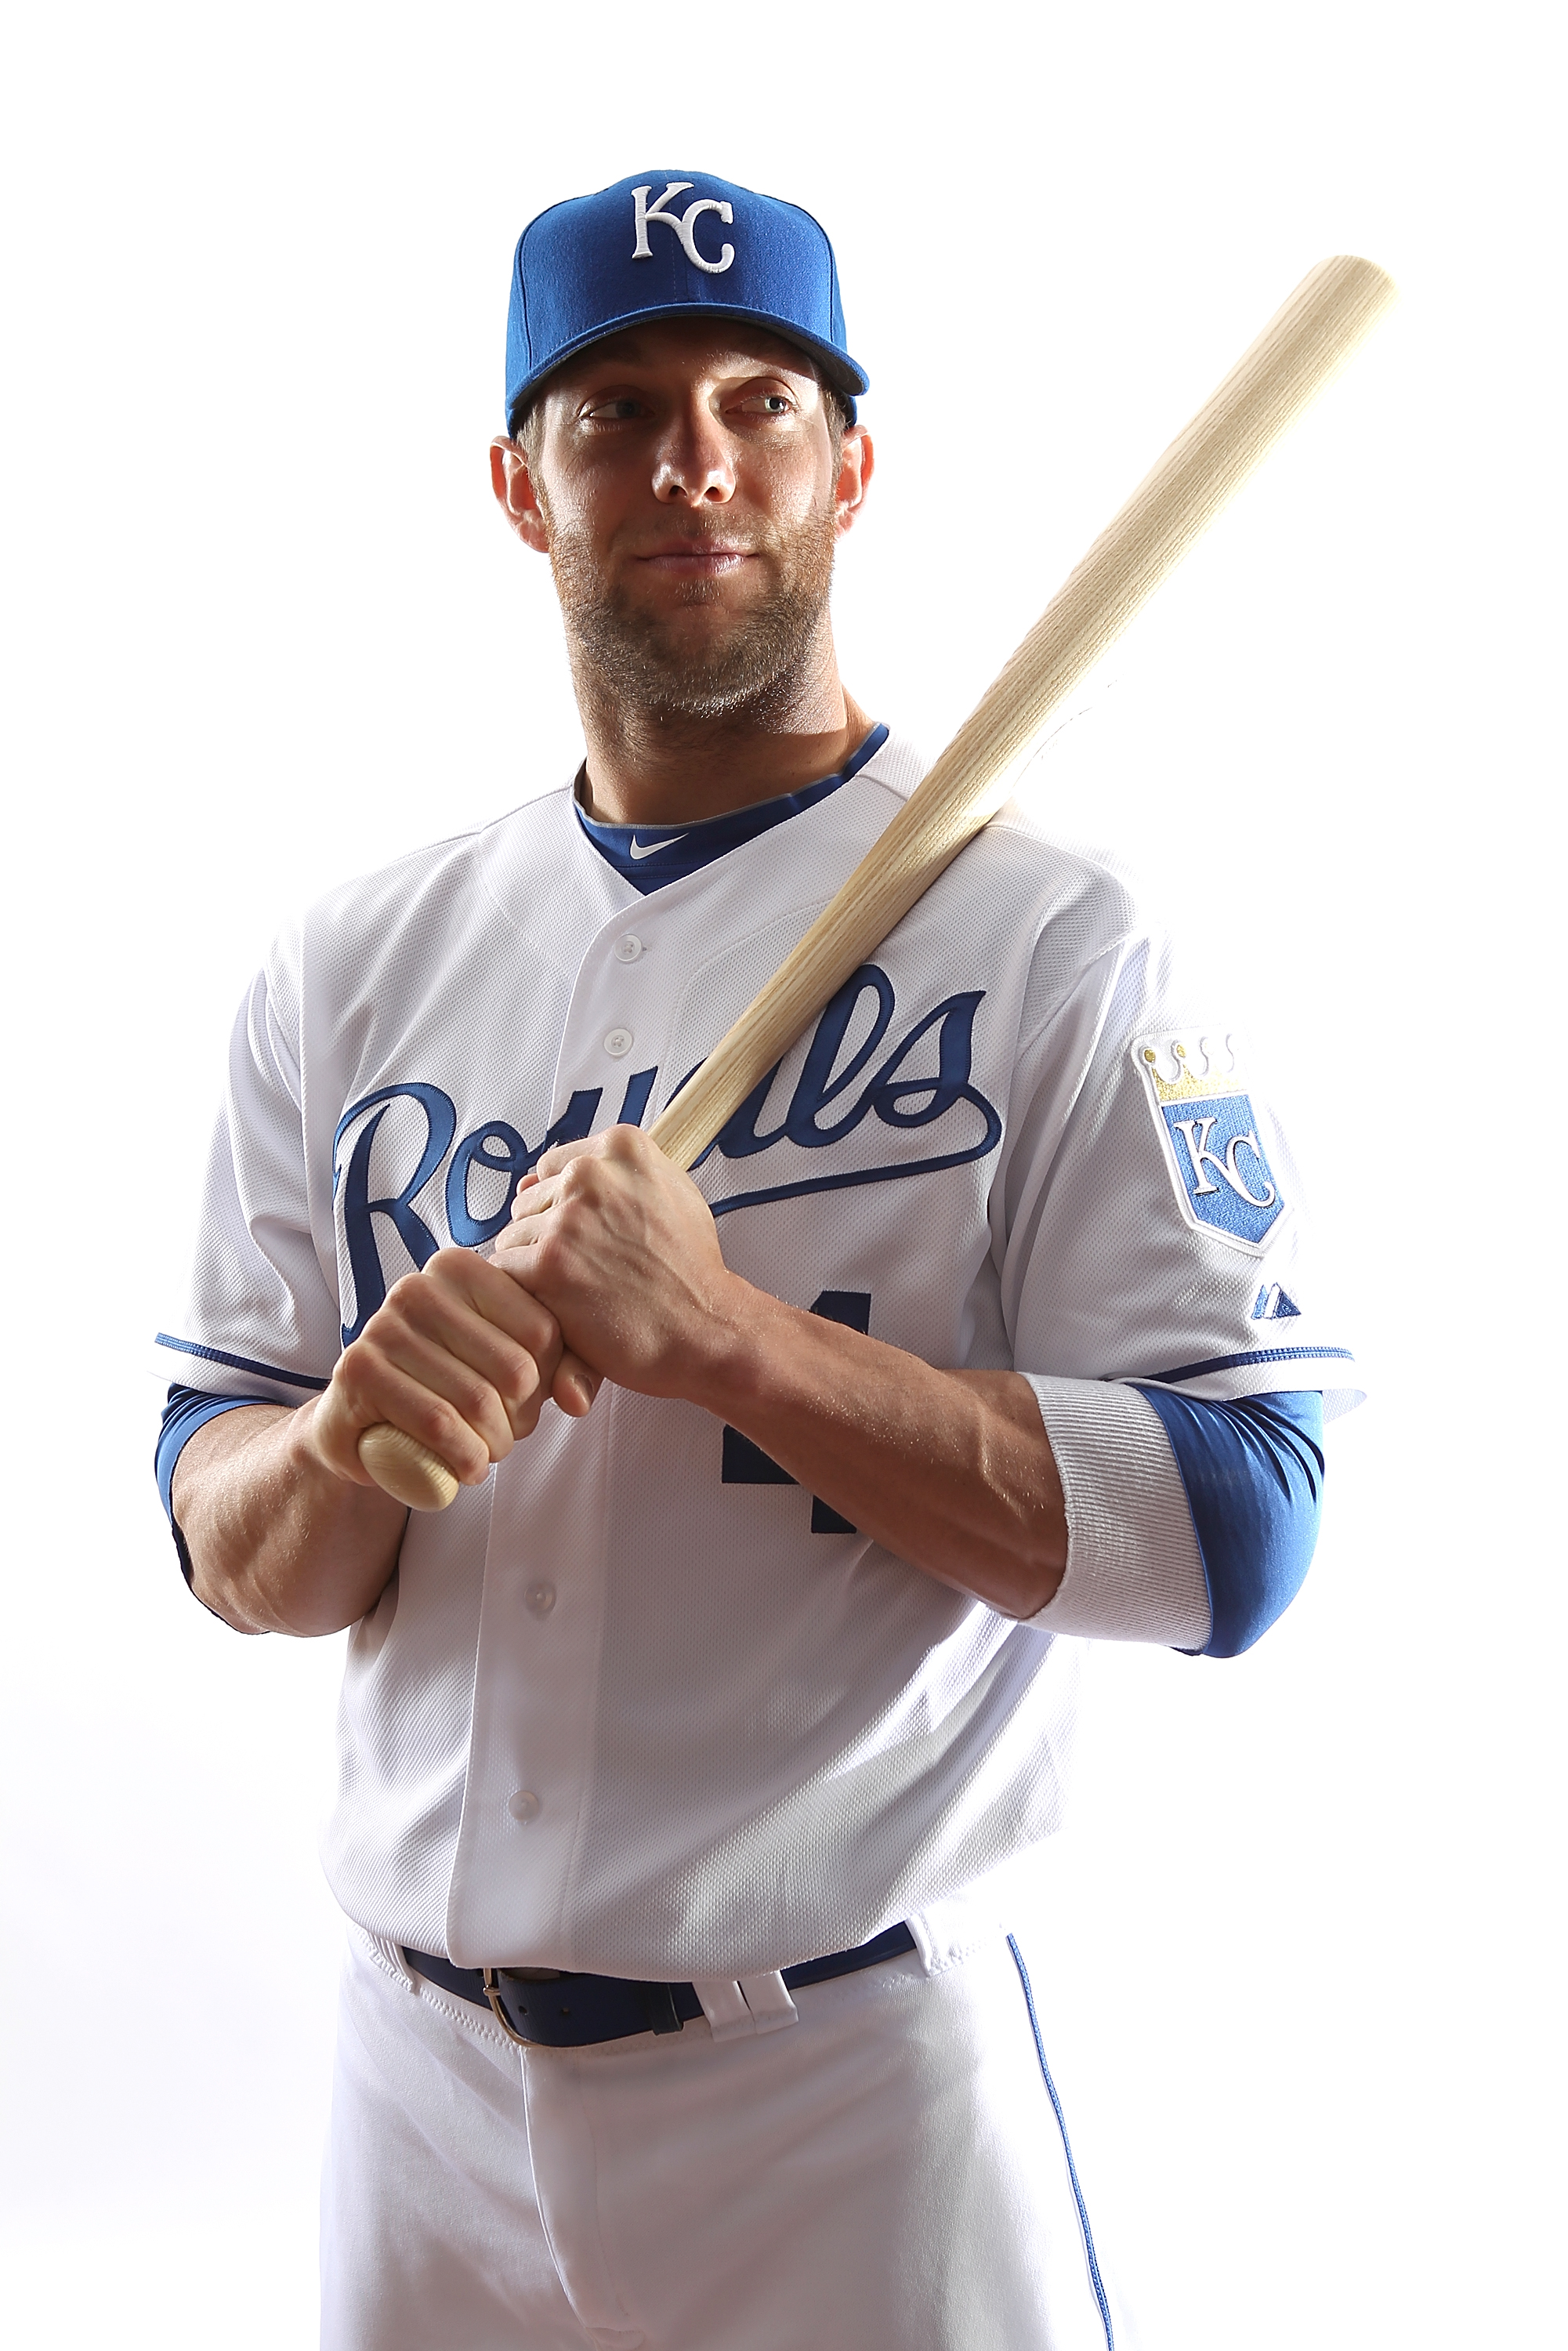 SURPRISE, AZ - FEBRUARY 23:  Alex Gordon #4 of the Kansas City Royals poses for a portrait during Spring Training Media Day on February 23, 2011 at Surprise Stadium in Surprise, Arizona..  (Photo by Jonathan Ferrey/Getty Images)